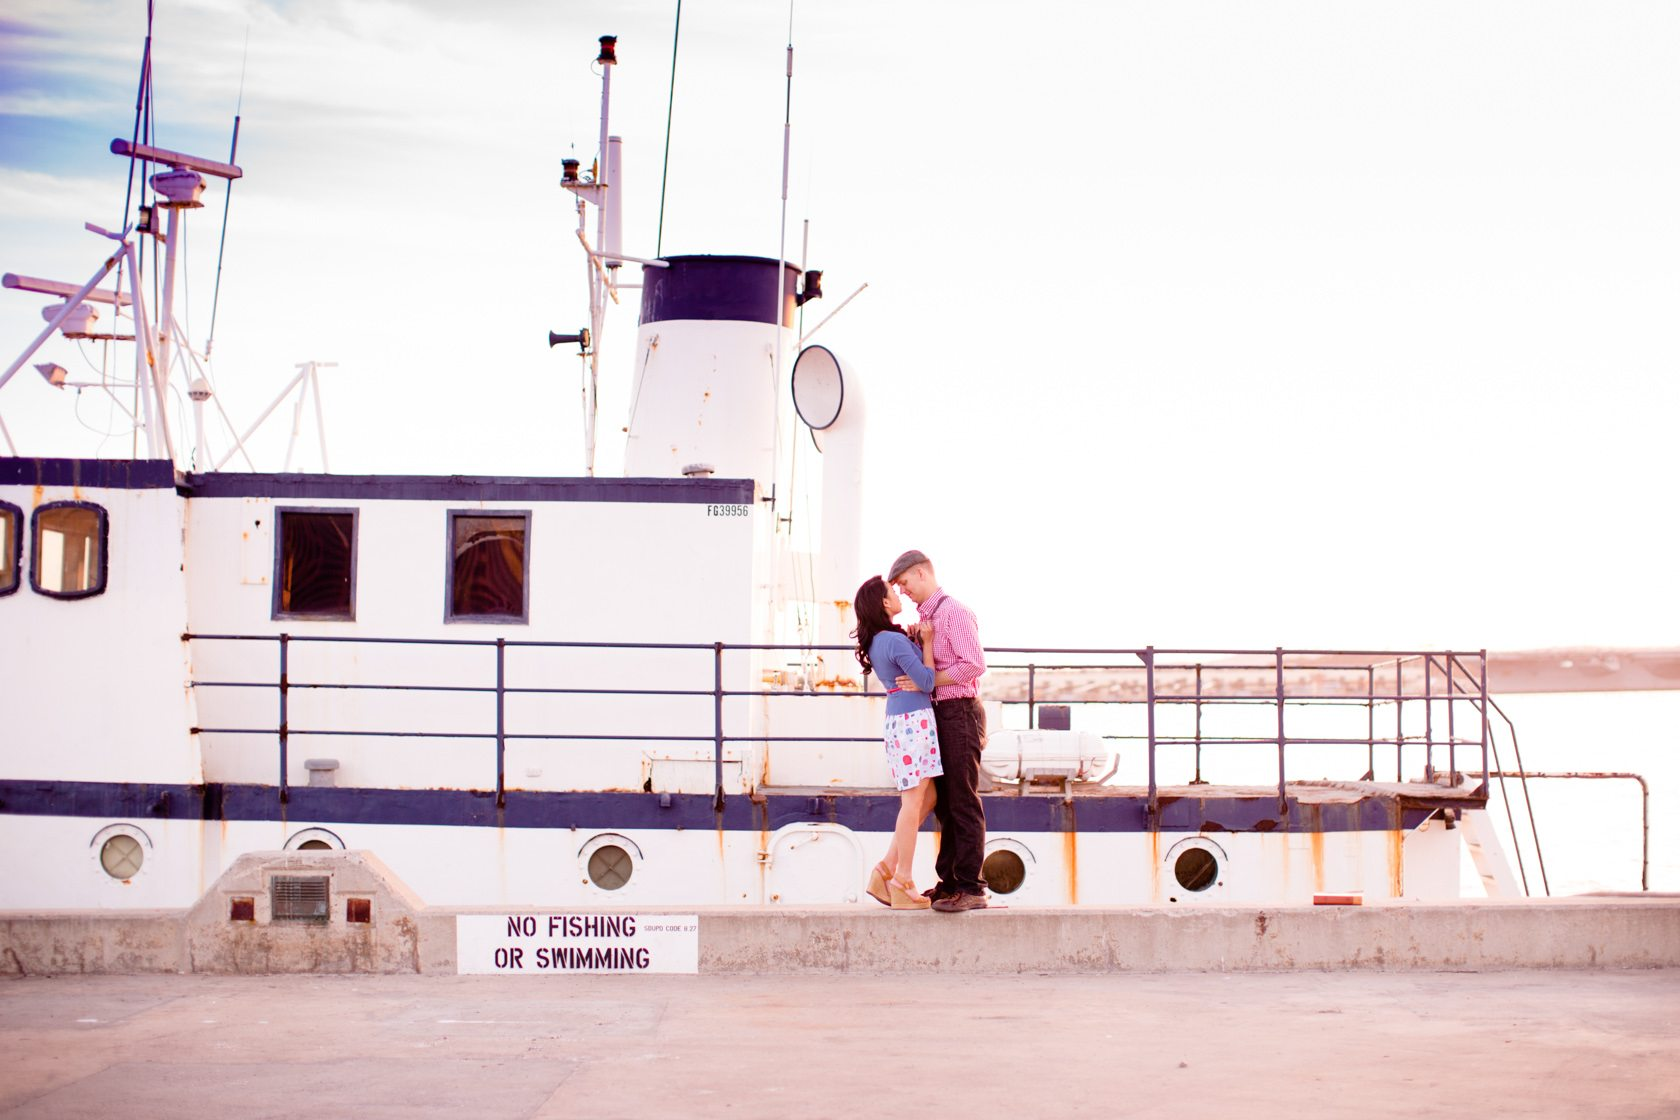 USS_Midway_Engagement_Session_33.jpg